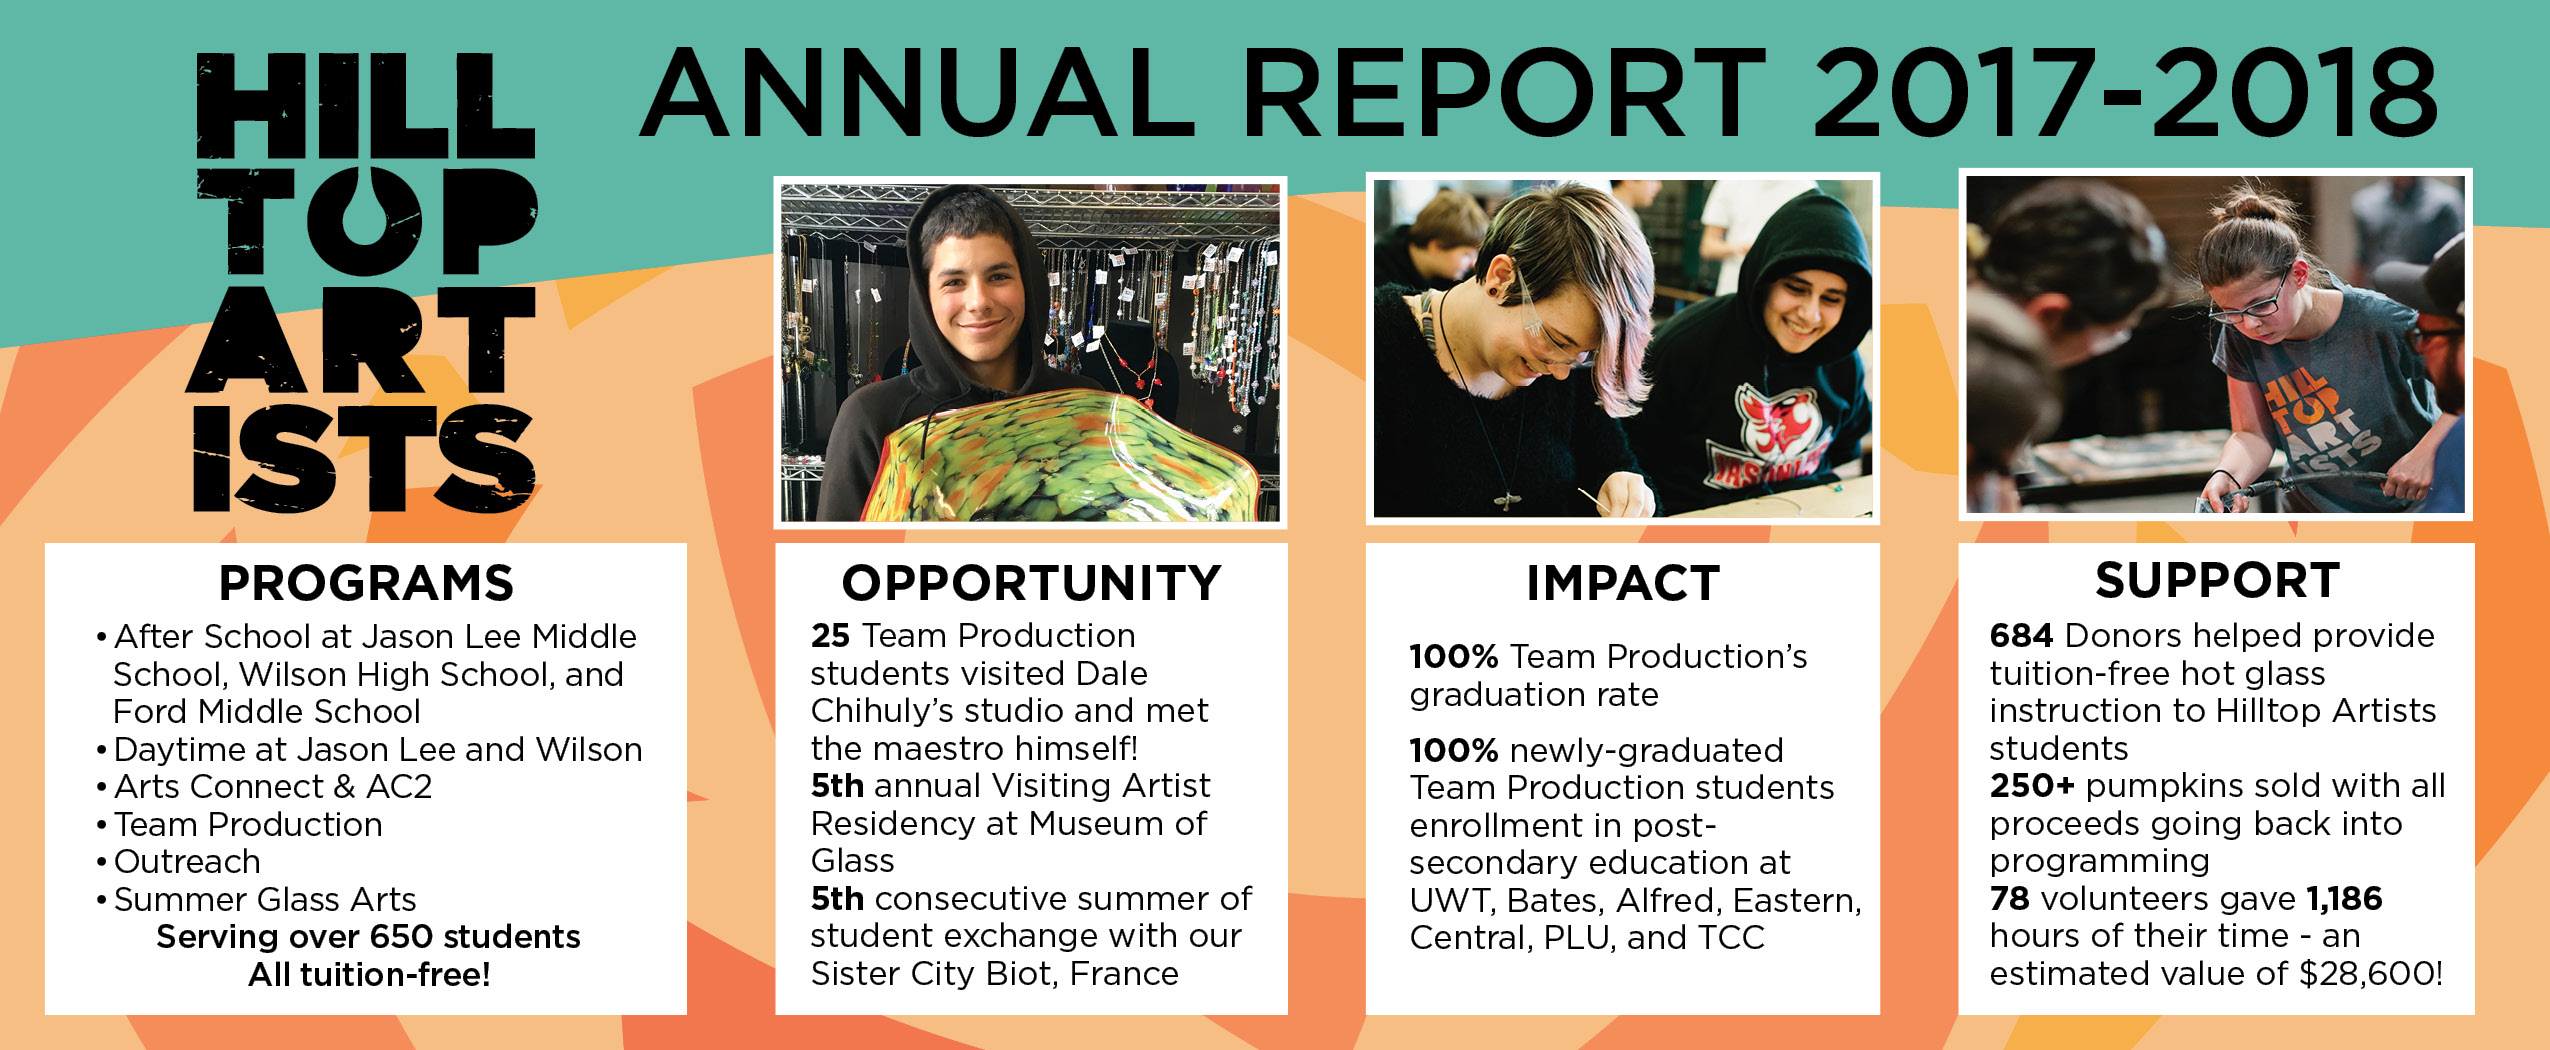 Annual Report 2017-2018_final